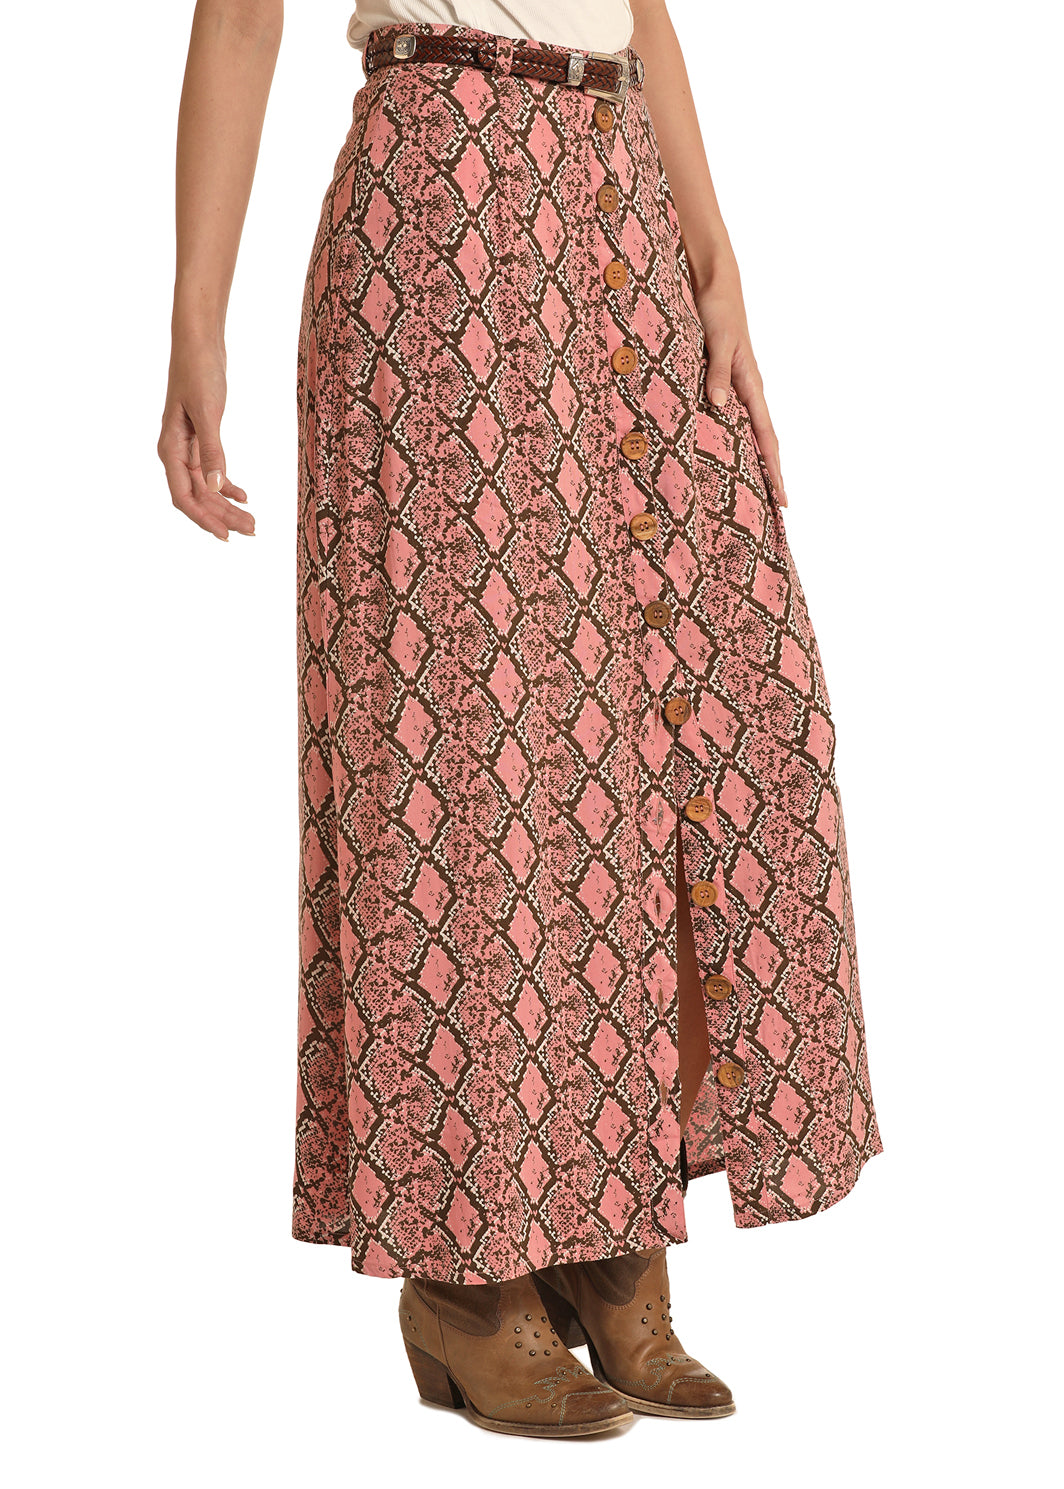 Panhandle Women's Snakeskin Maxi Skirt